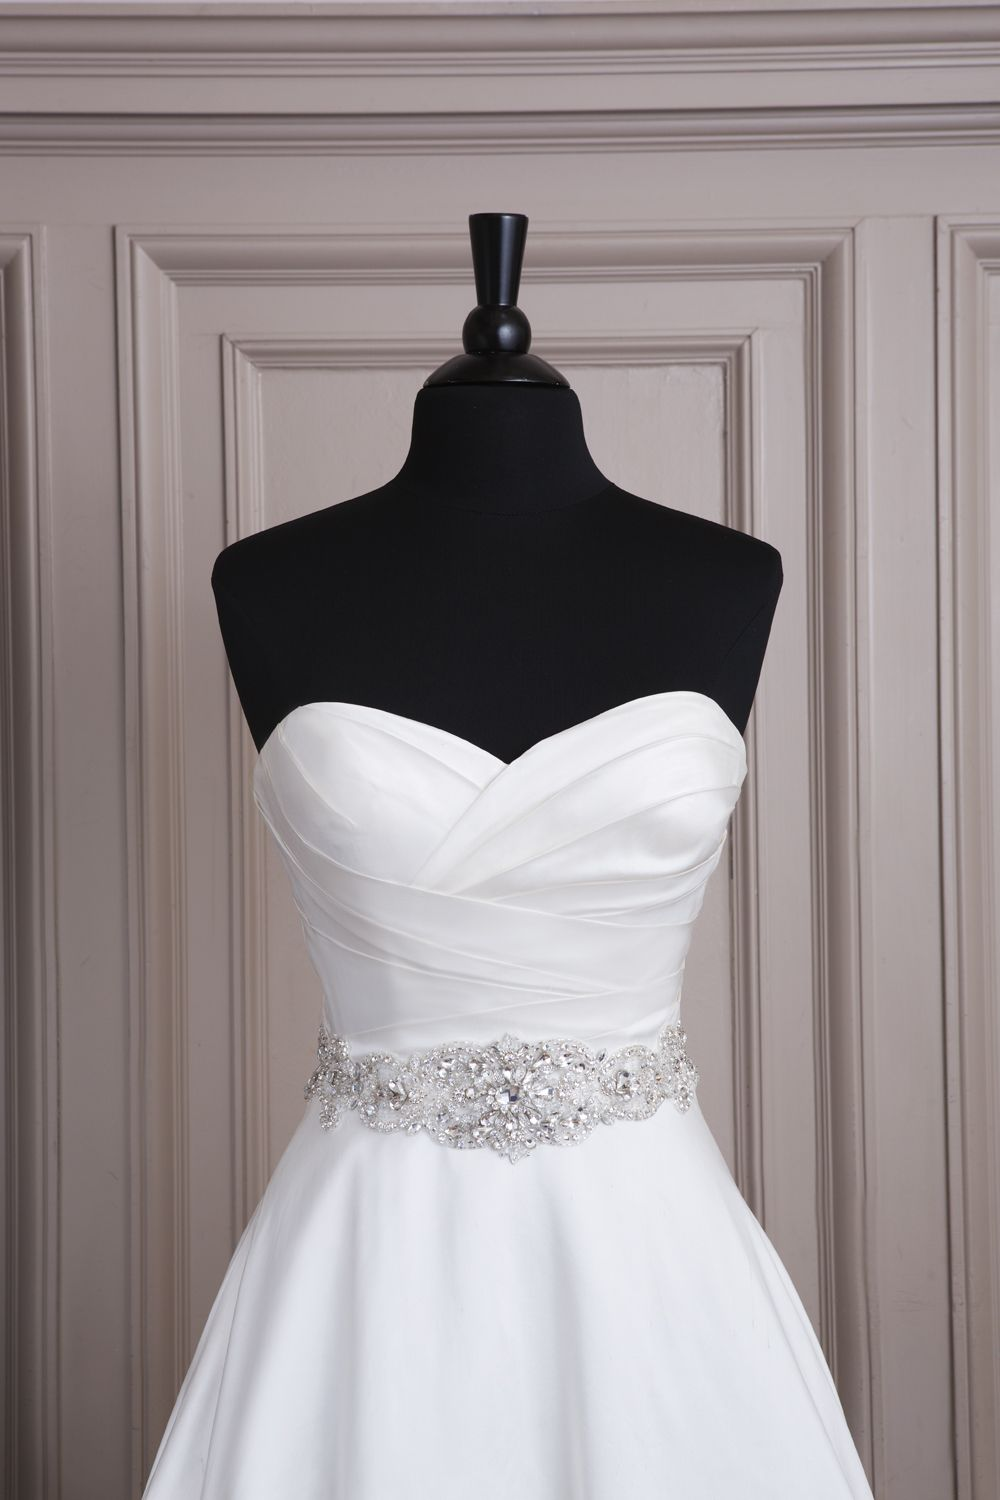 557906fceee Ambiance~Distinctive Weddings   Events Accessories that give your gown  panache~Justin Alexander wedding accessories style A066 All over beaded  belt with ...